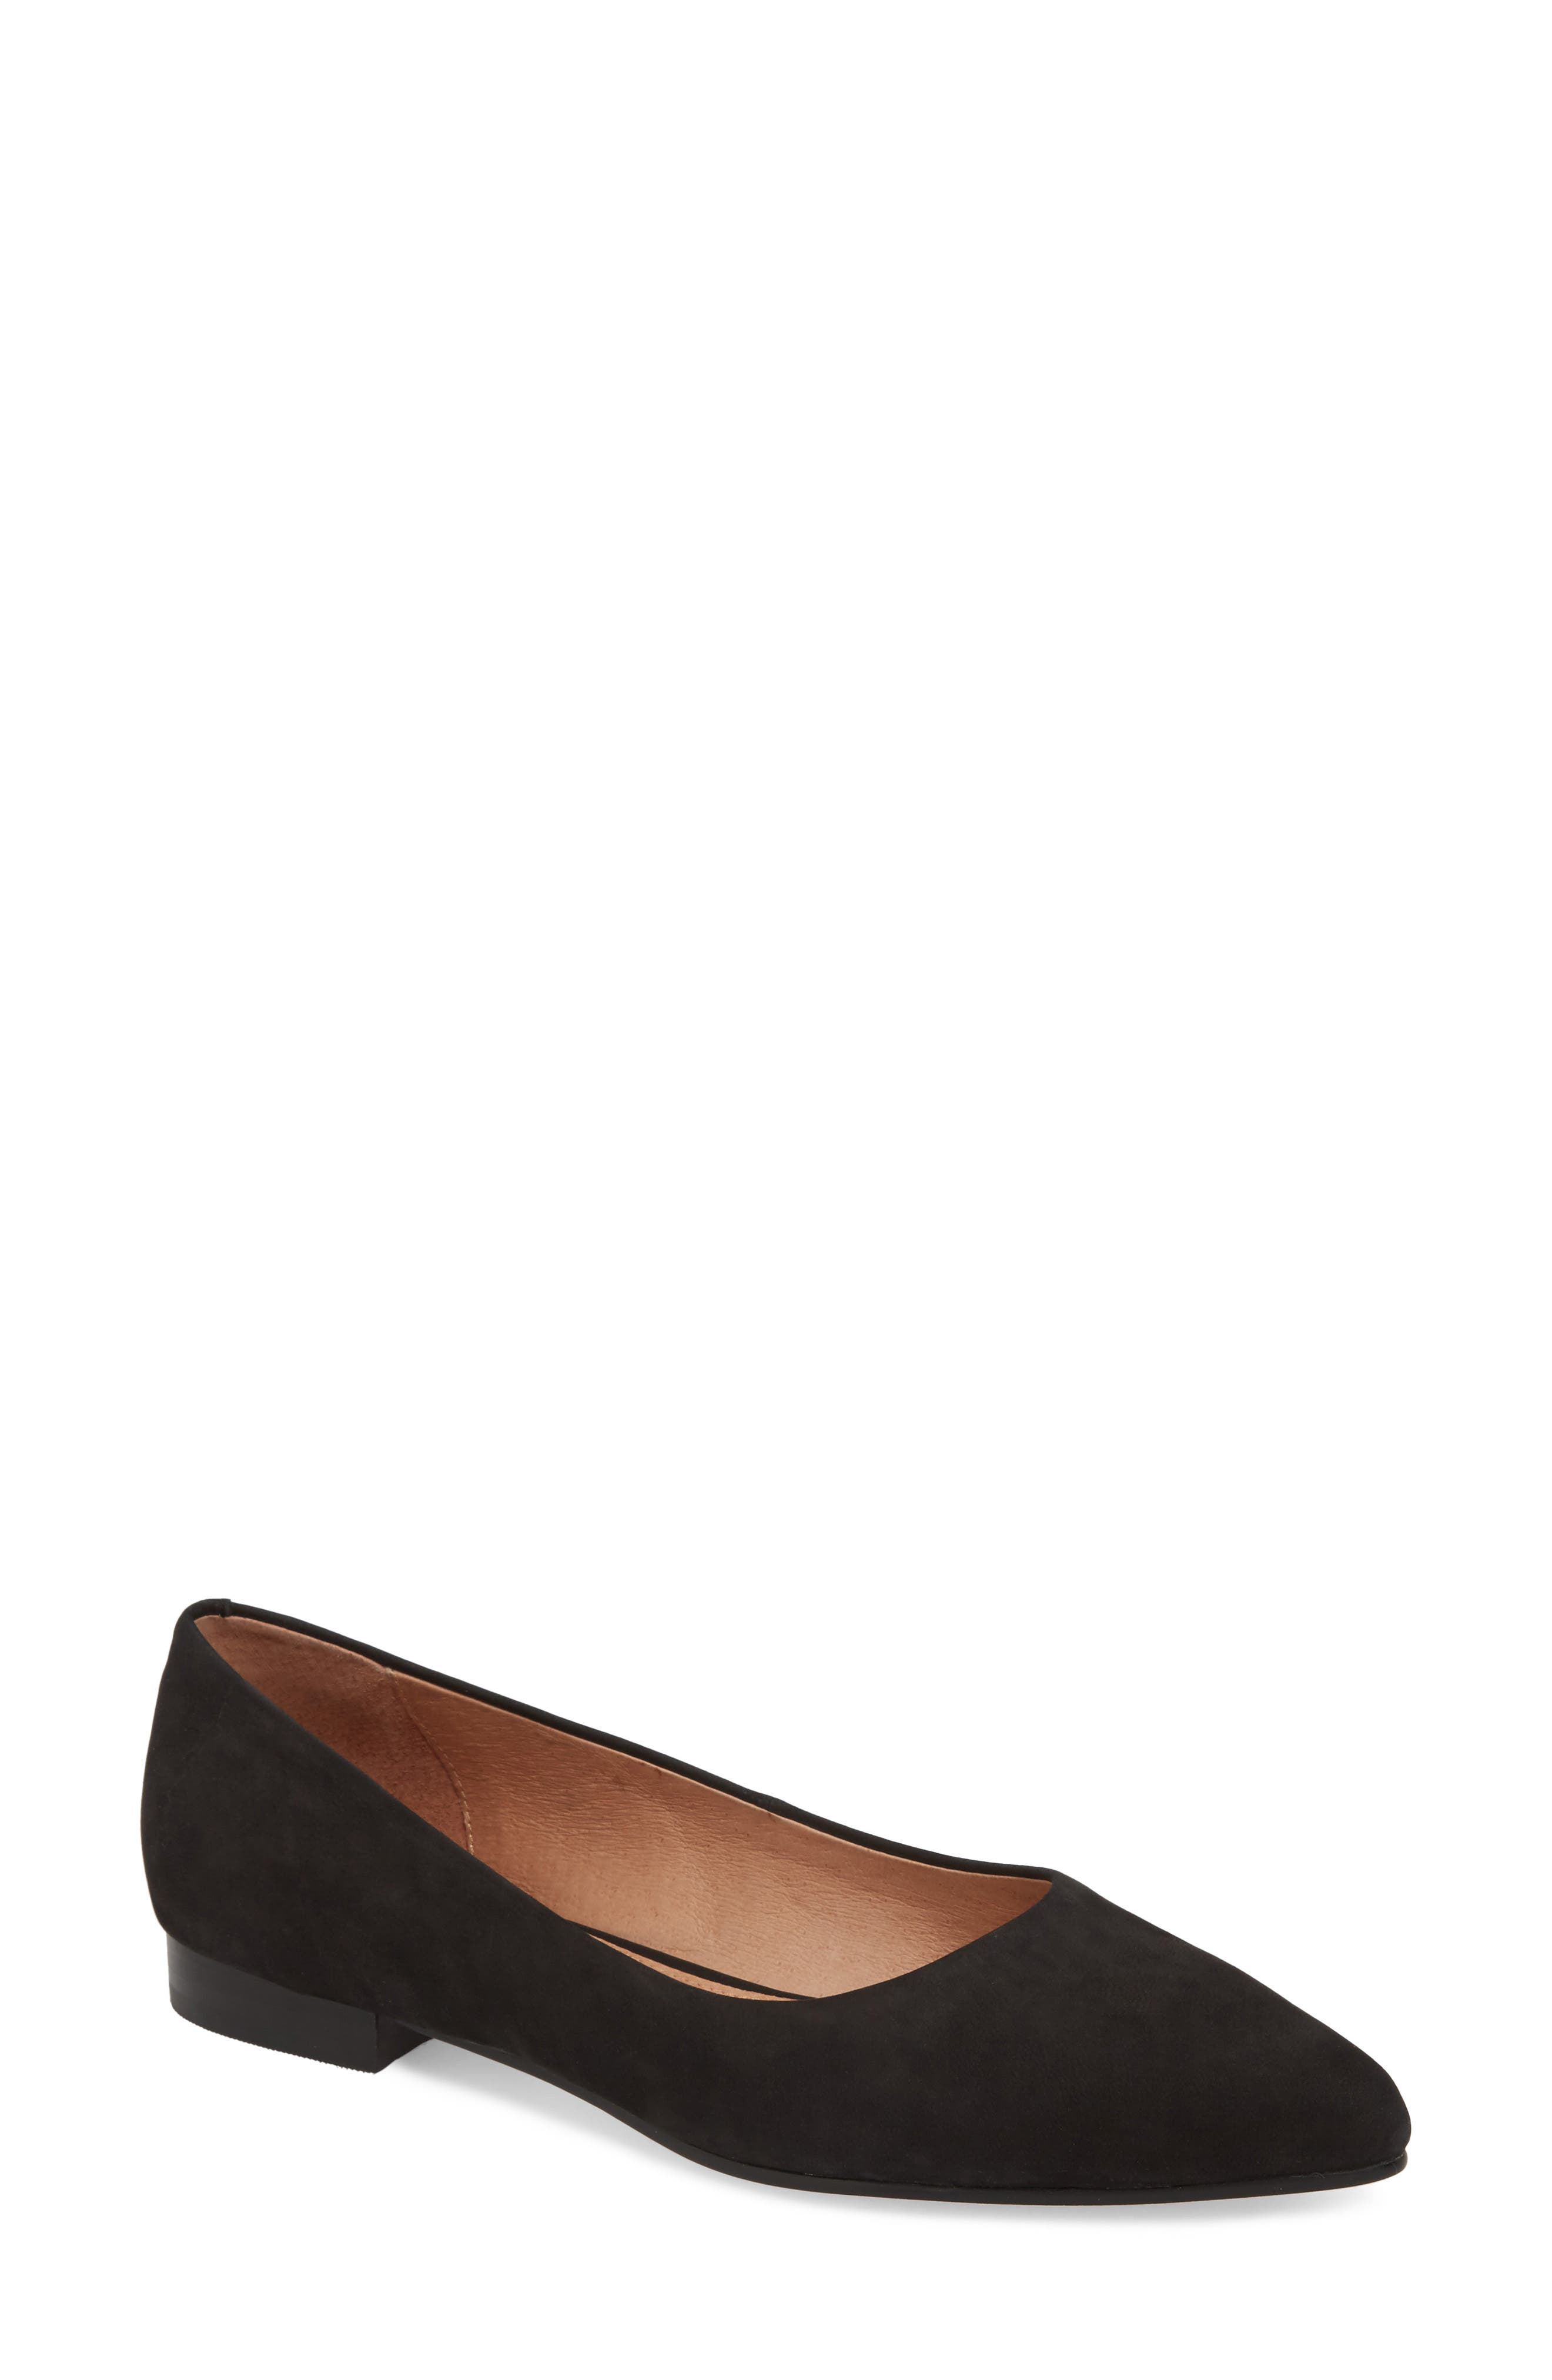 Luna Pointy Toe Flat,                             Main thumbnail 1, color,                             BLACK NUBUCK